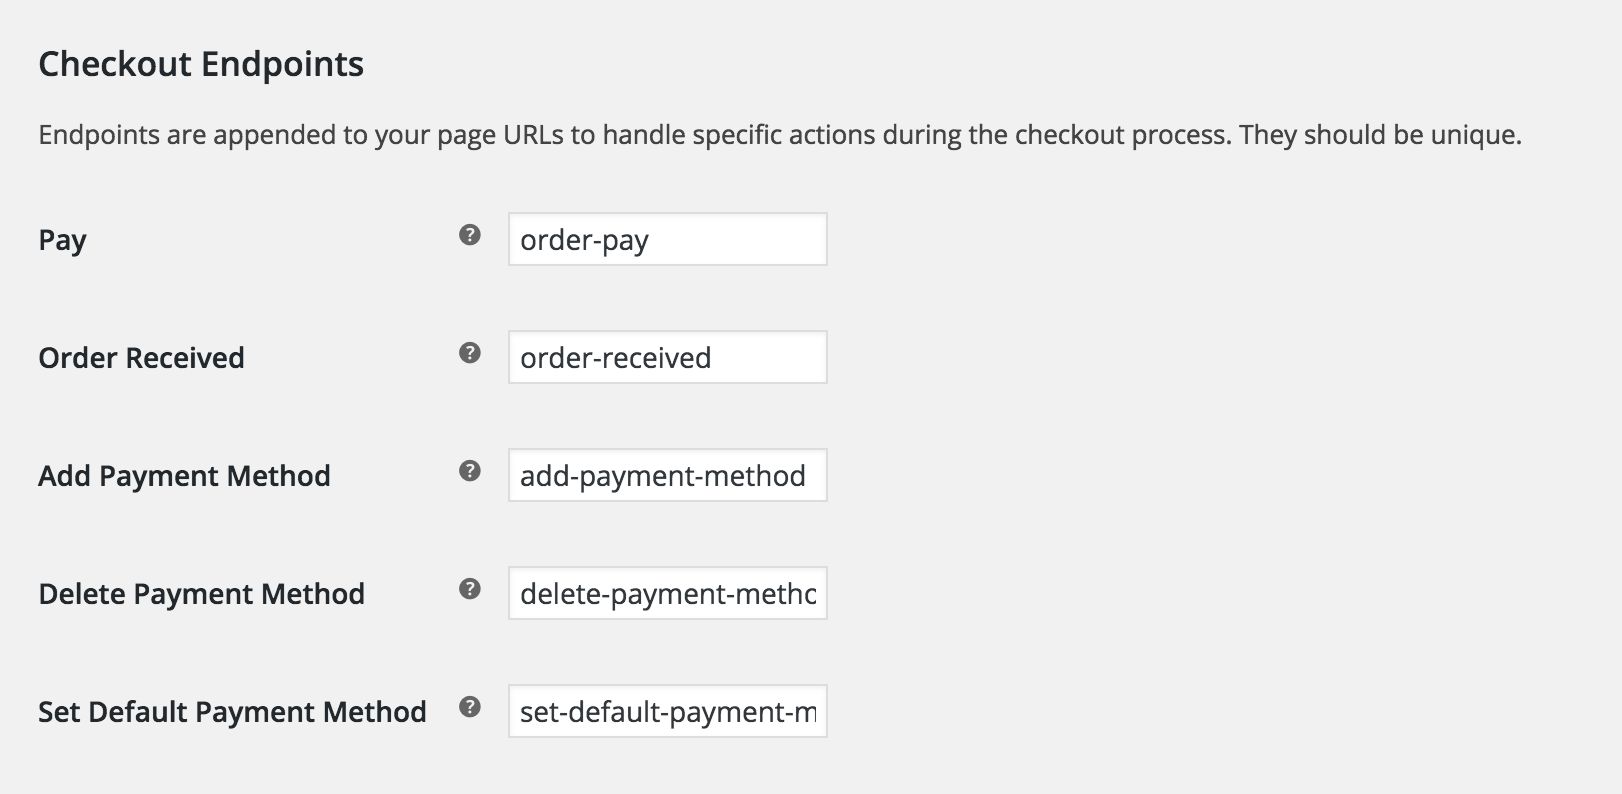 Shop customer account create/downloader - Checkout Endpoints Back To Top